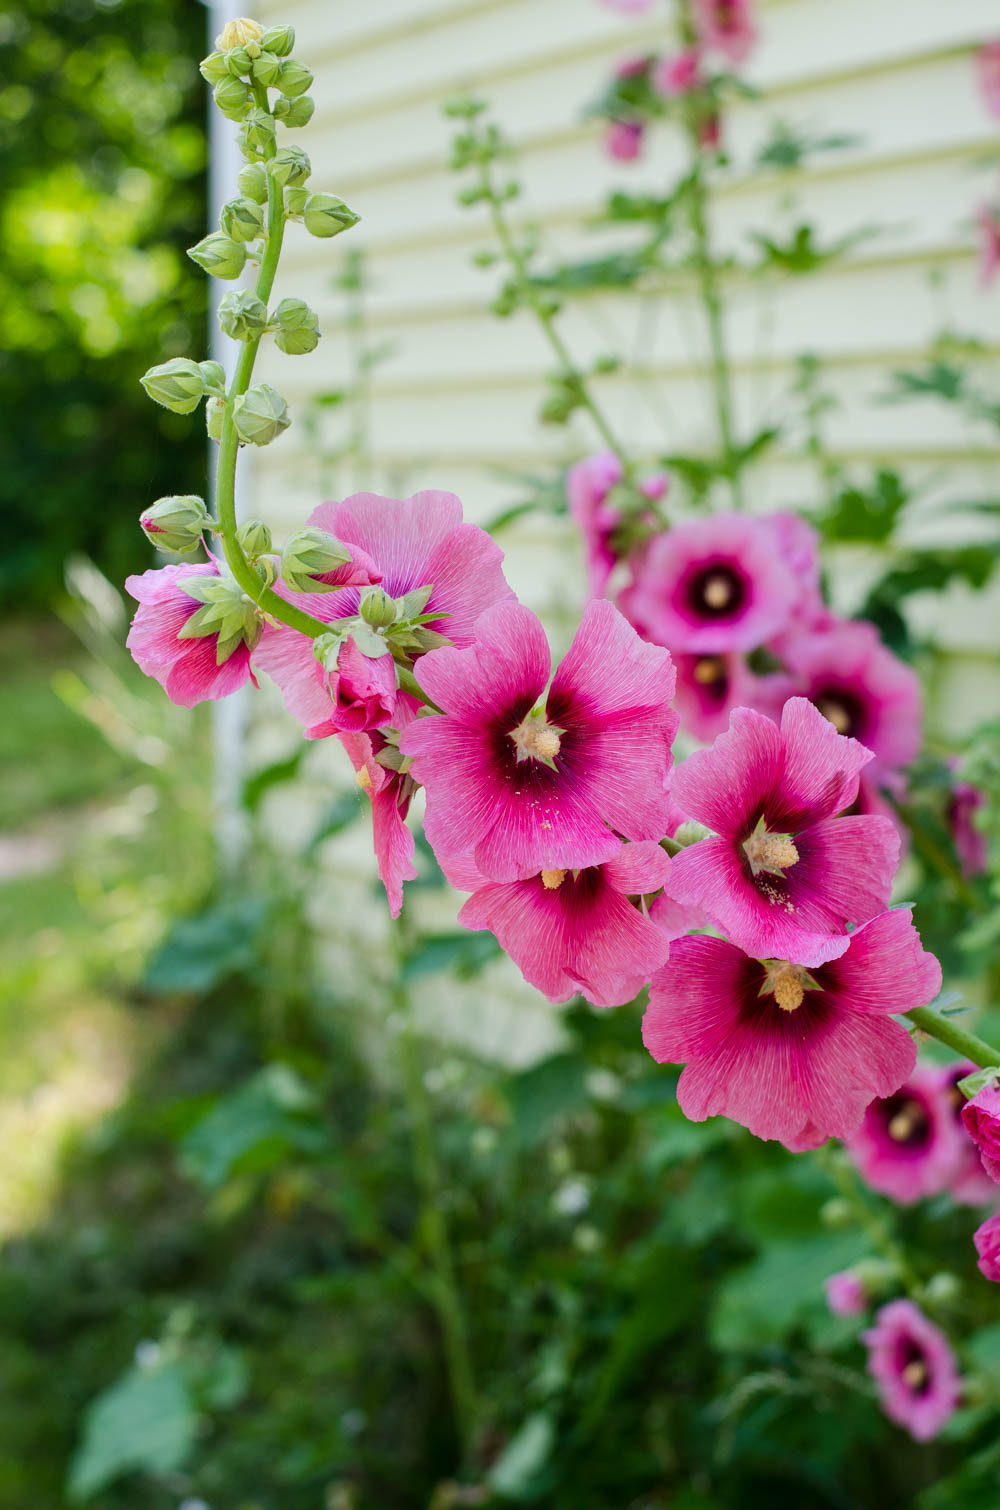 The Story of the Hollyhocks